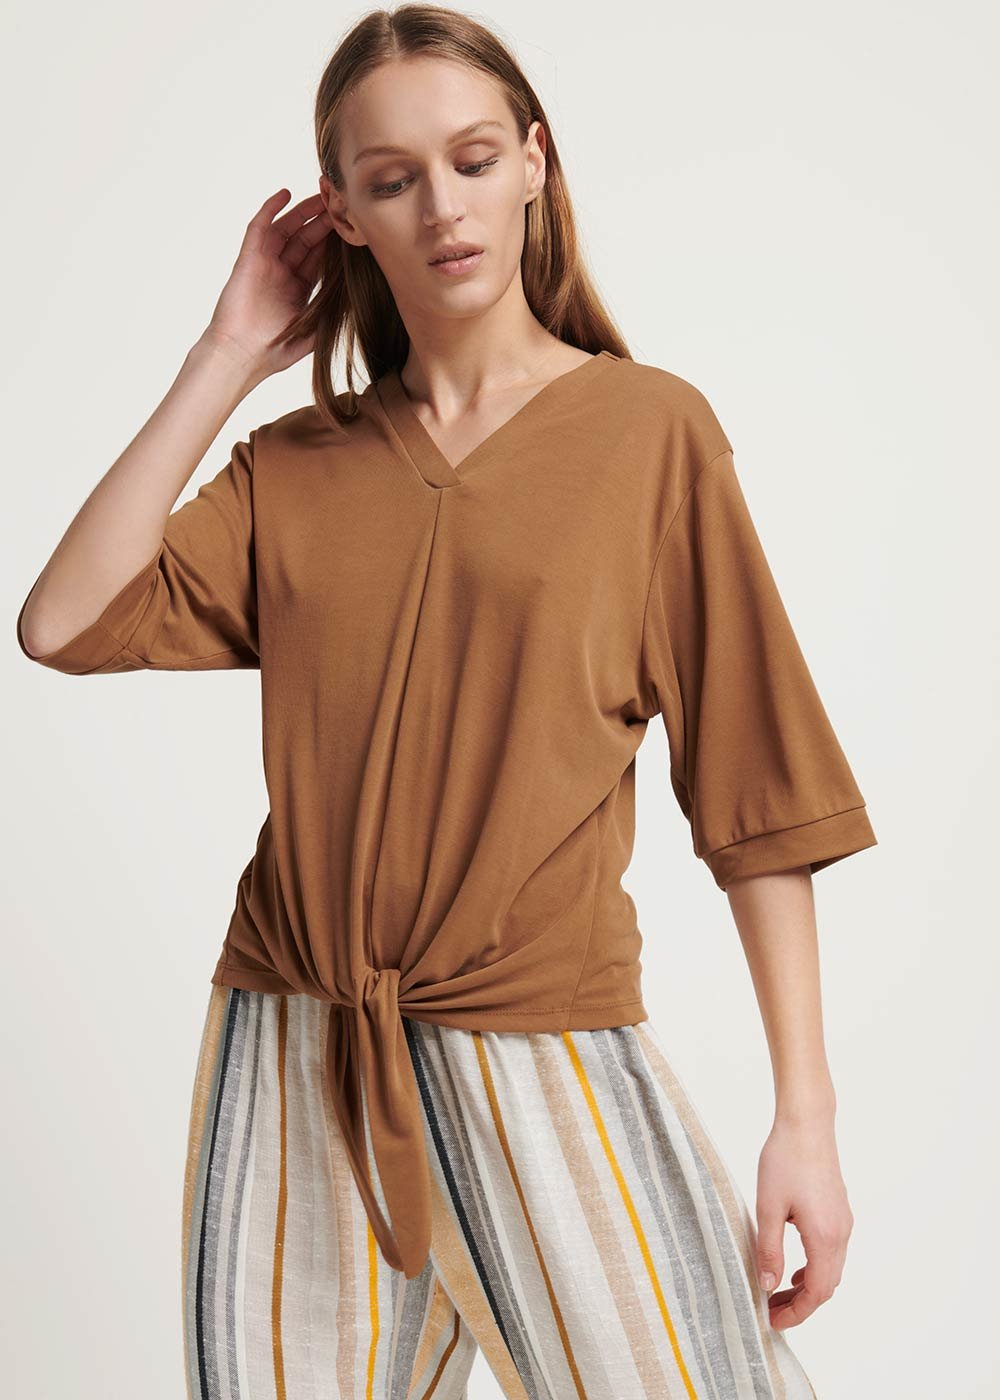 Sole t-shirt with knot at the bottom - Pecan - Woman